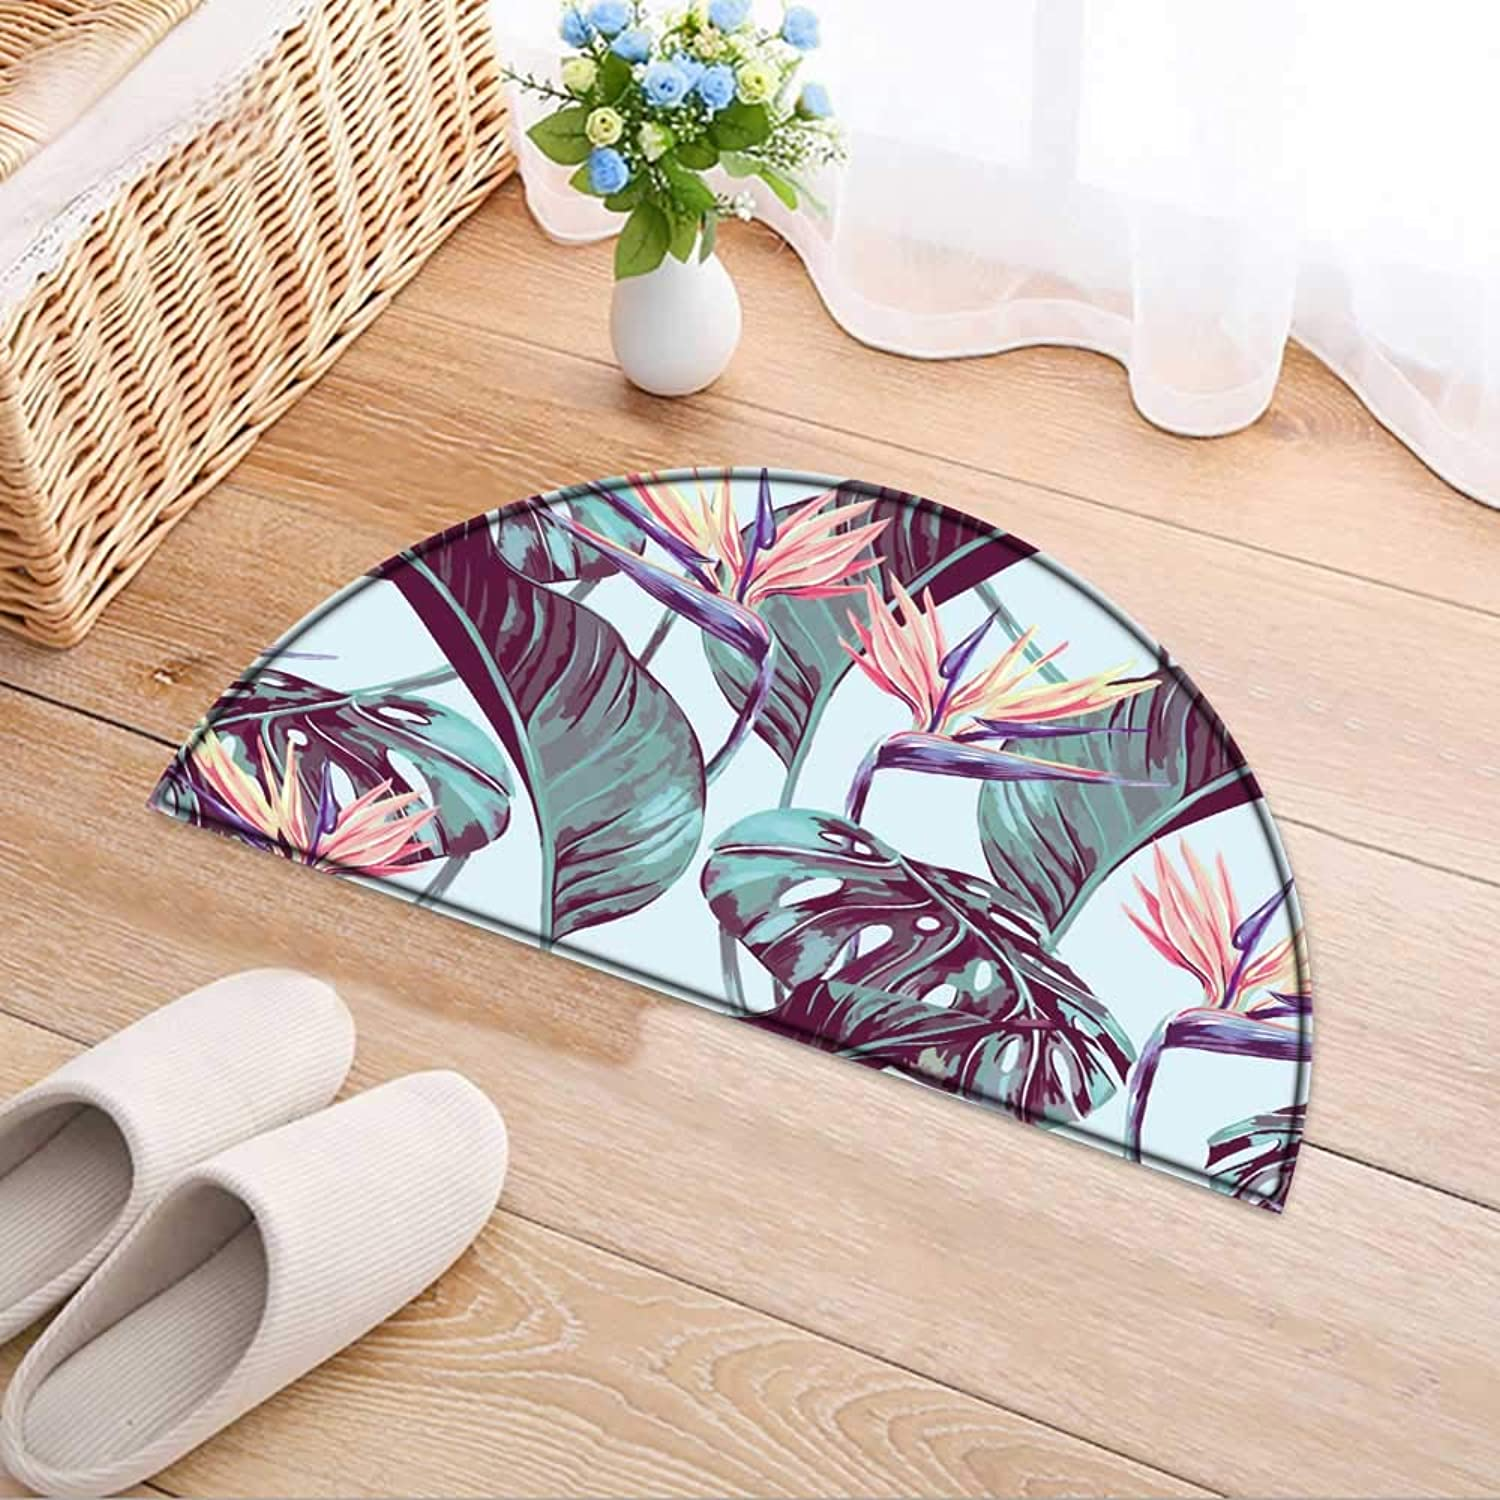 Semicircle Rug Kid Carpet Tropical Flowers Jungle Leaves Bird of Paradise Flower Vector Home Decor Foor Carpe W47 x H32 INCH